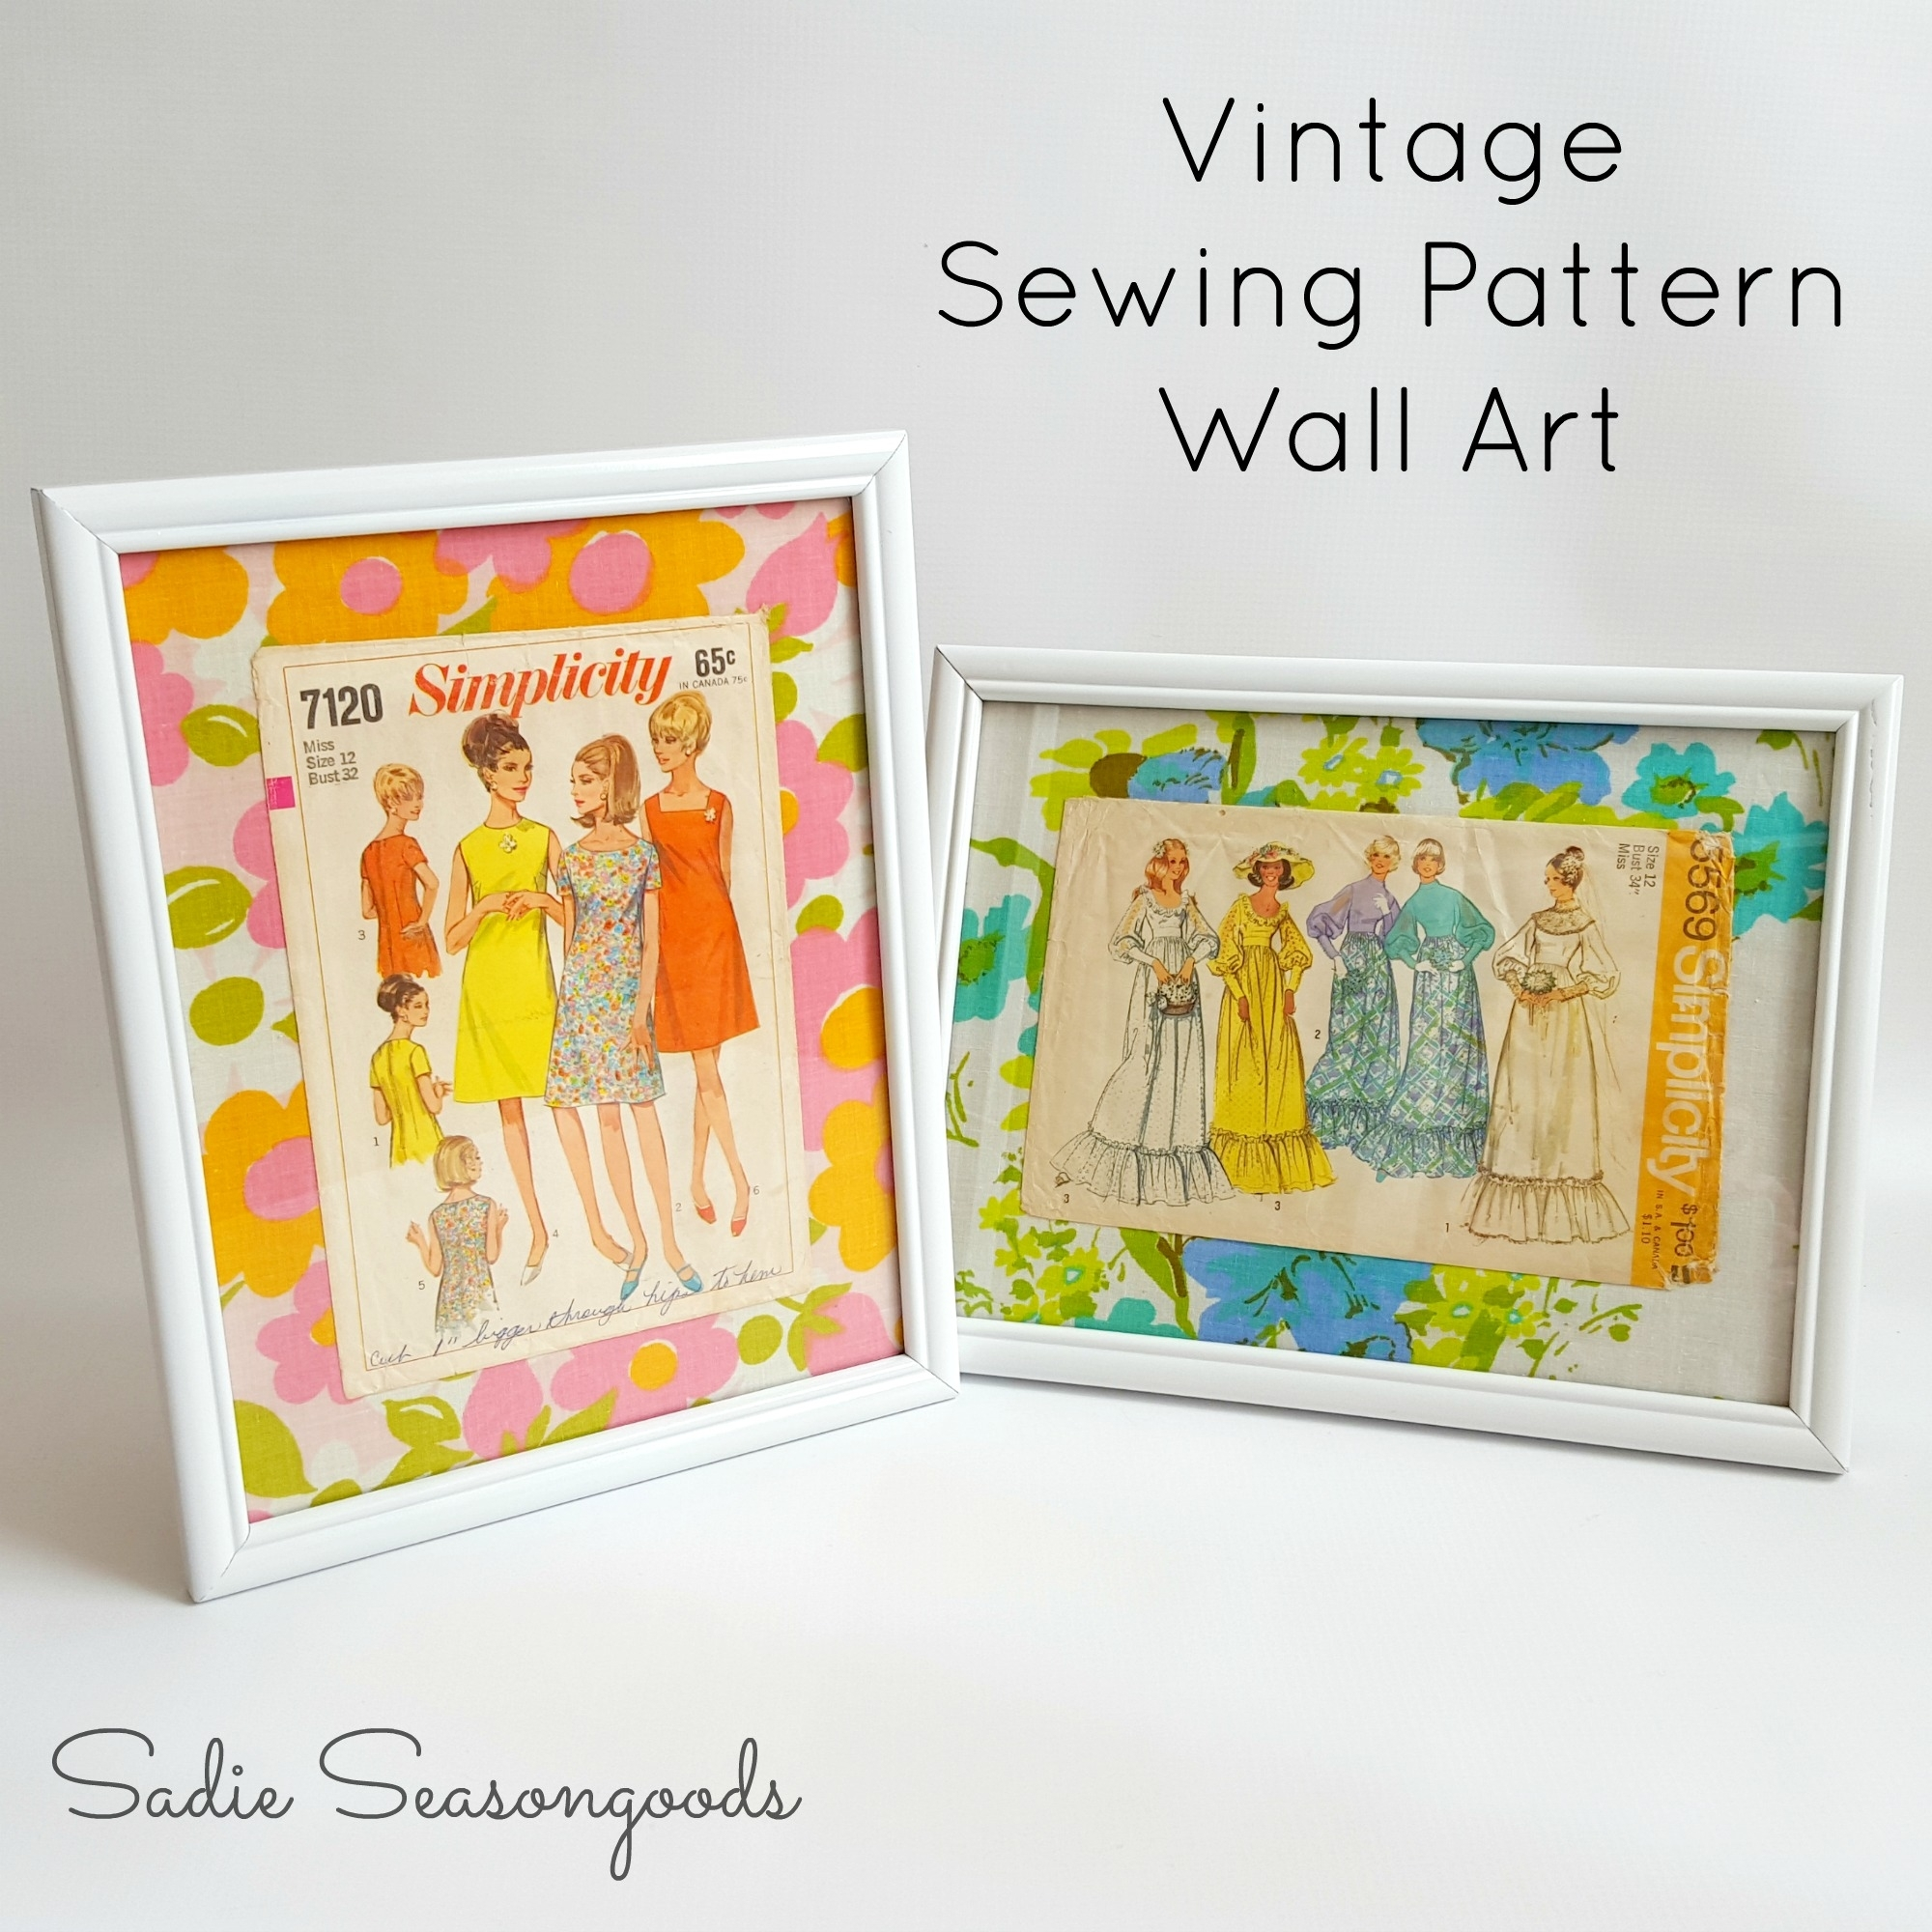 Fashion Wall Art Using Repurposed Vintage Sewing Patterns throughout Most Recent Fabric Wall Art Patterns